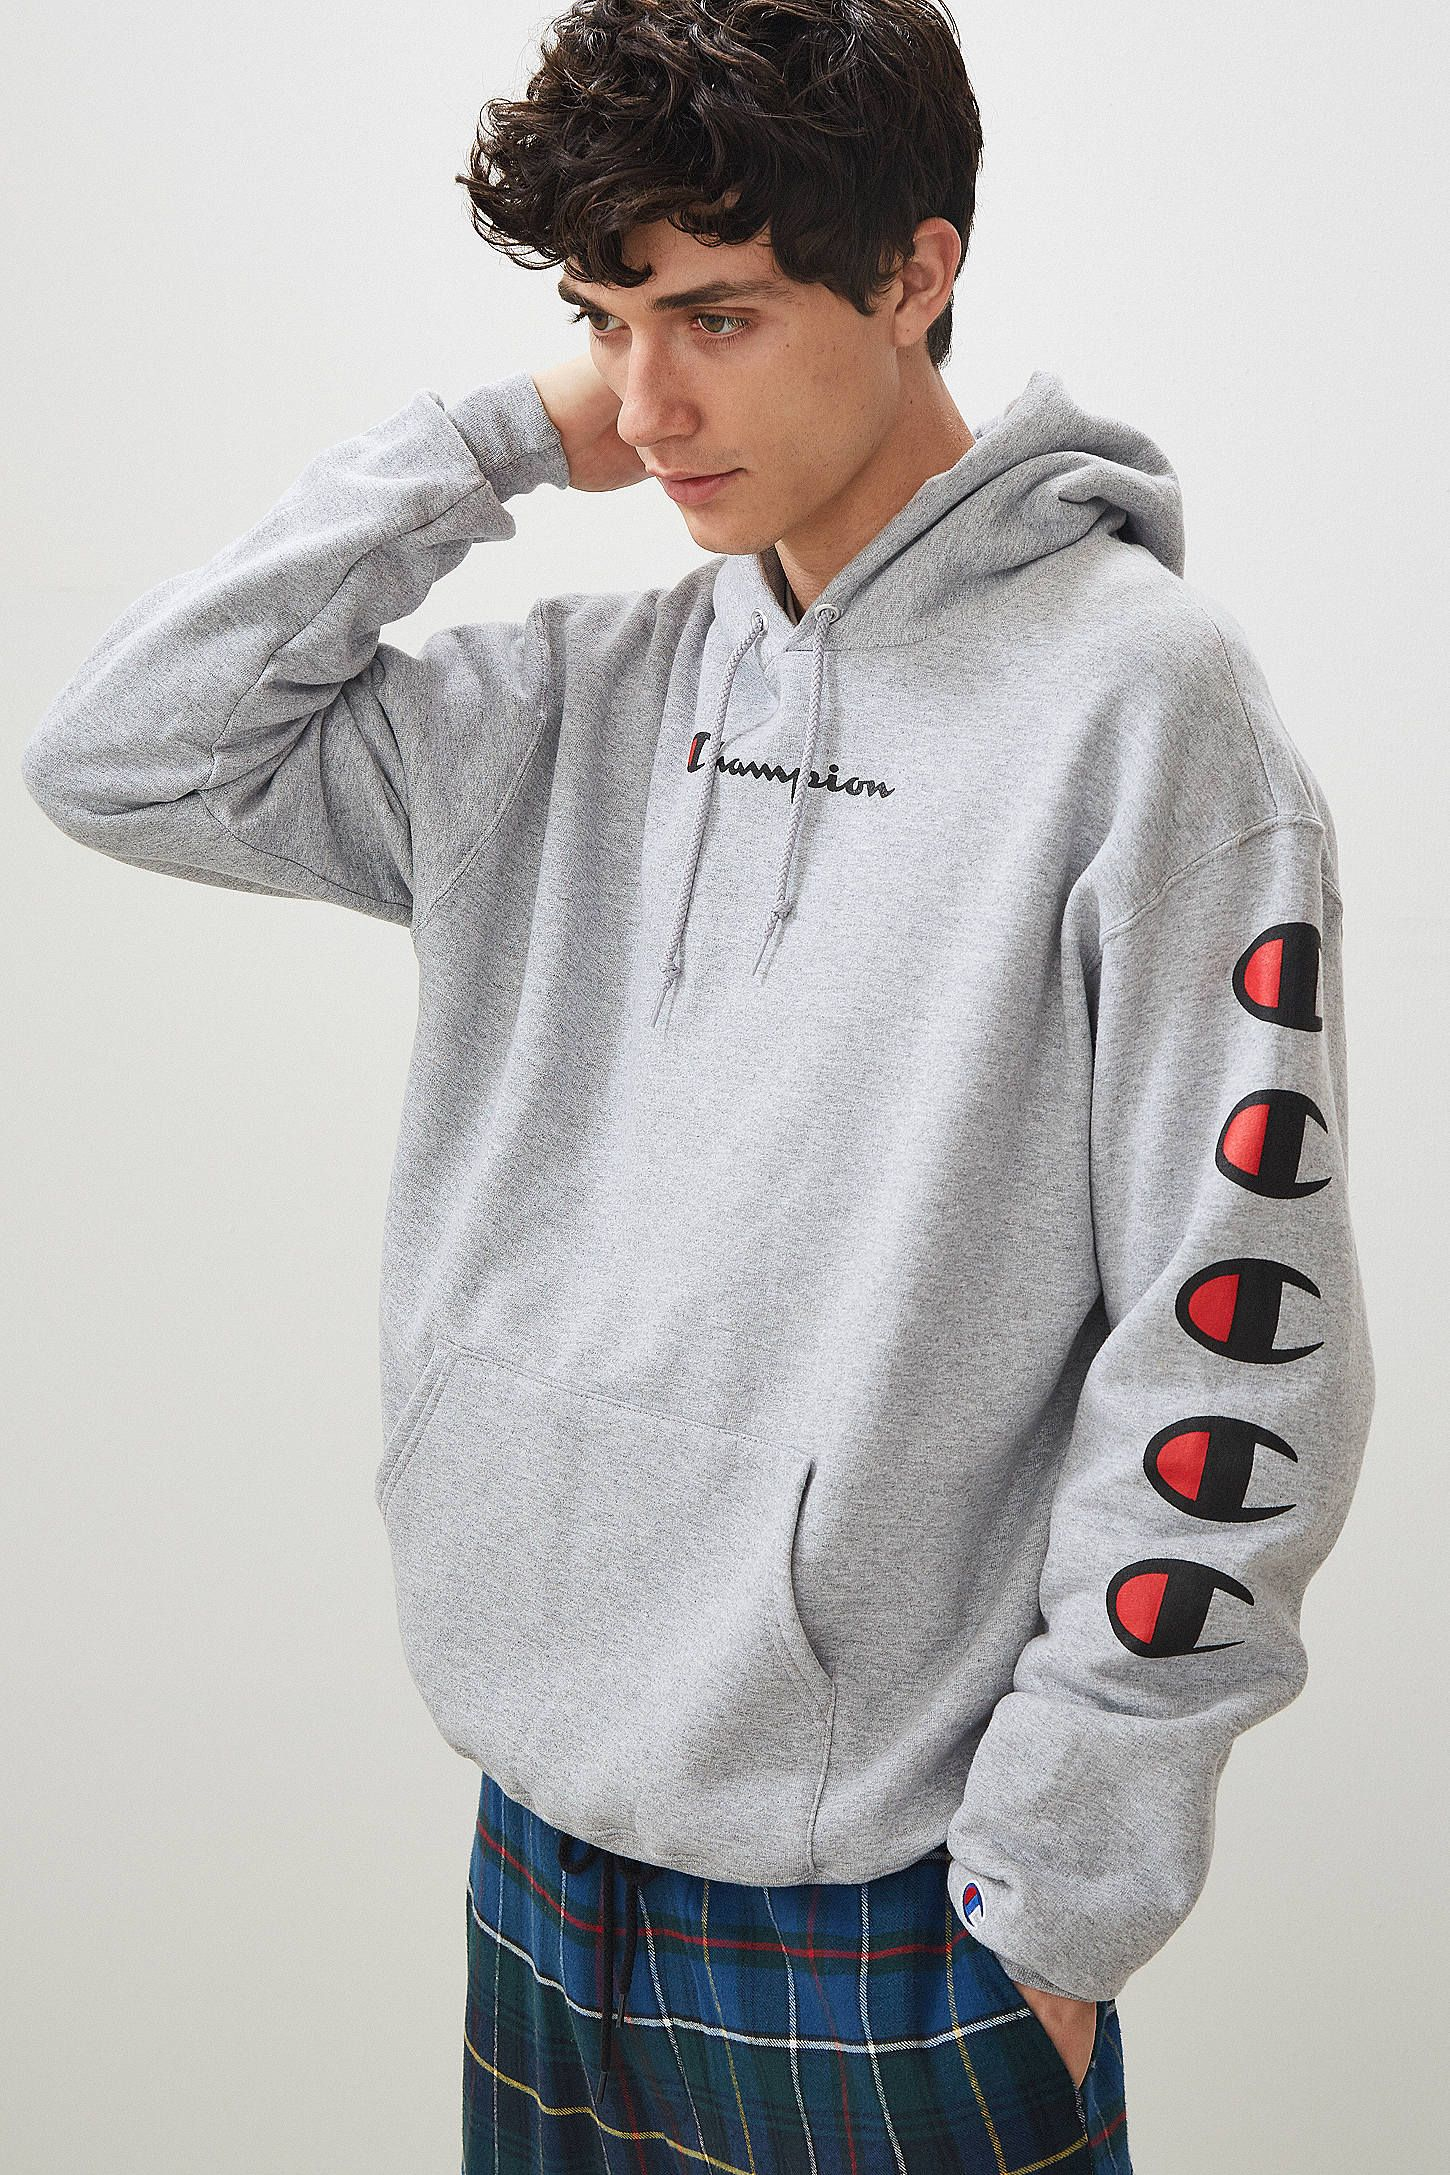 58b3d1aaf44ff Shop Champion Repeat Eco Hoodie Sweatshirt at Urban Outfitters today. We  carry all the latest styles